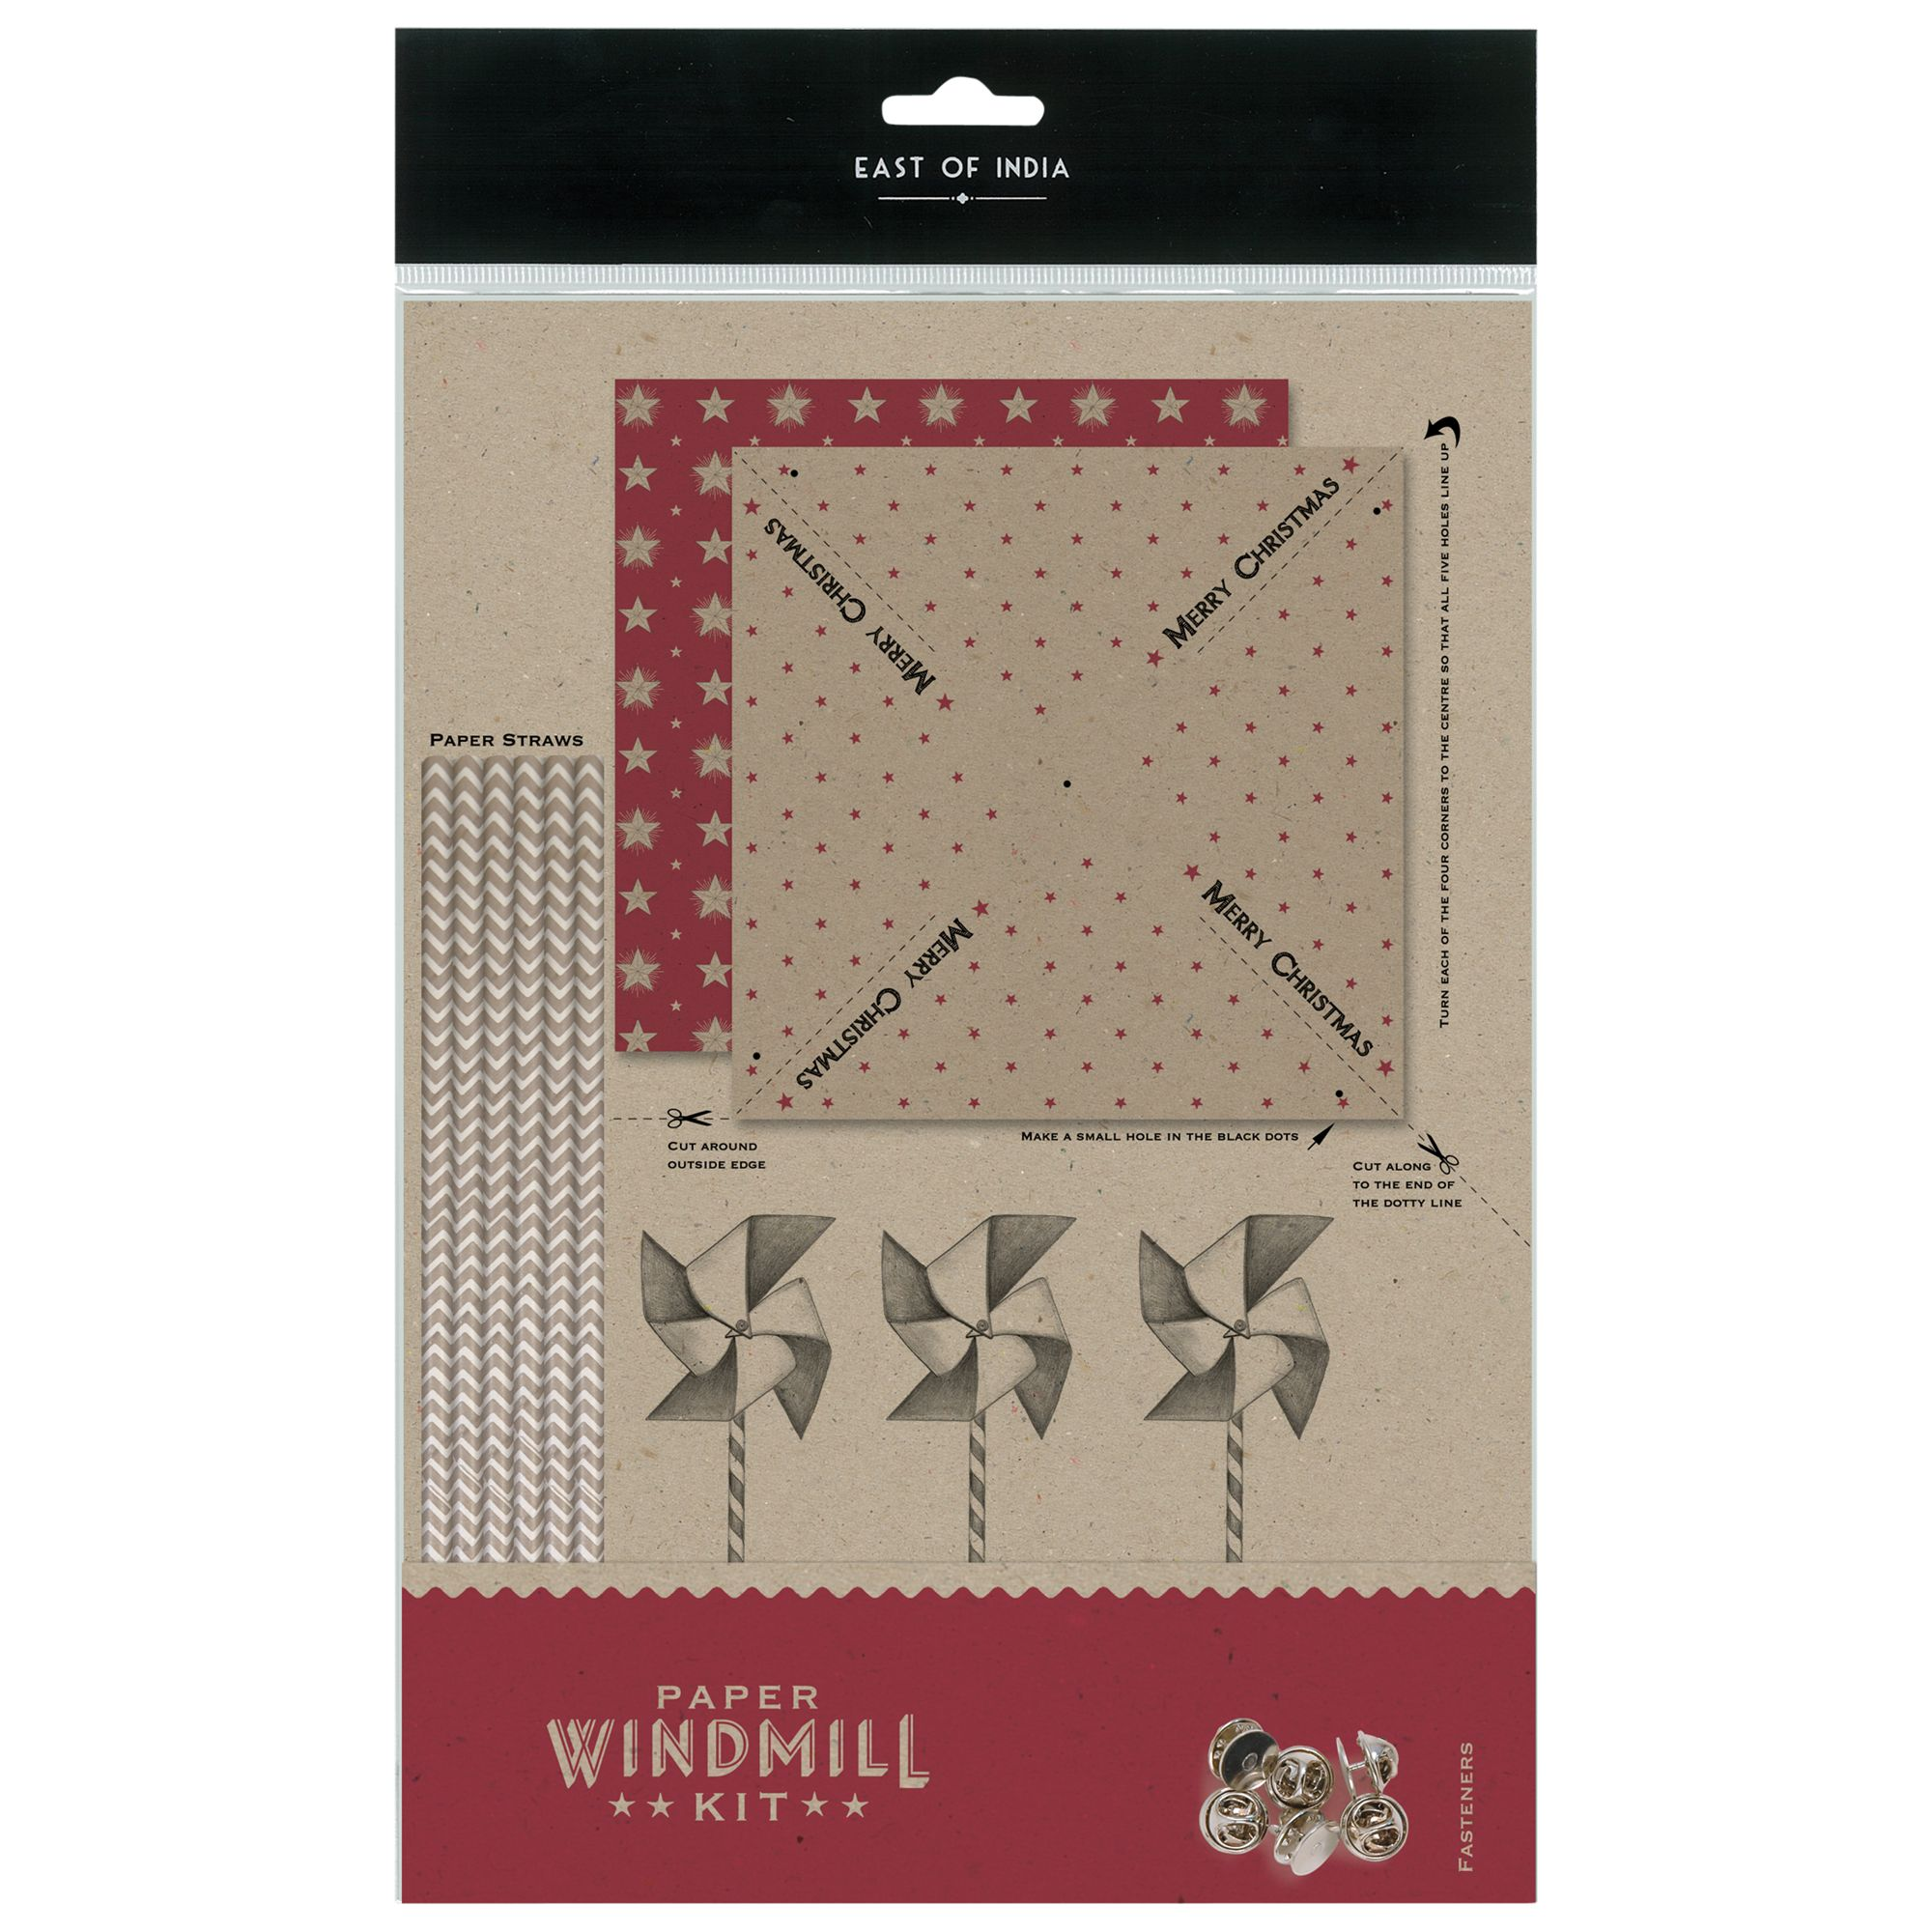 East of India East of India Christmas Paper Windmill Kit, Brown/Red